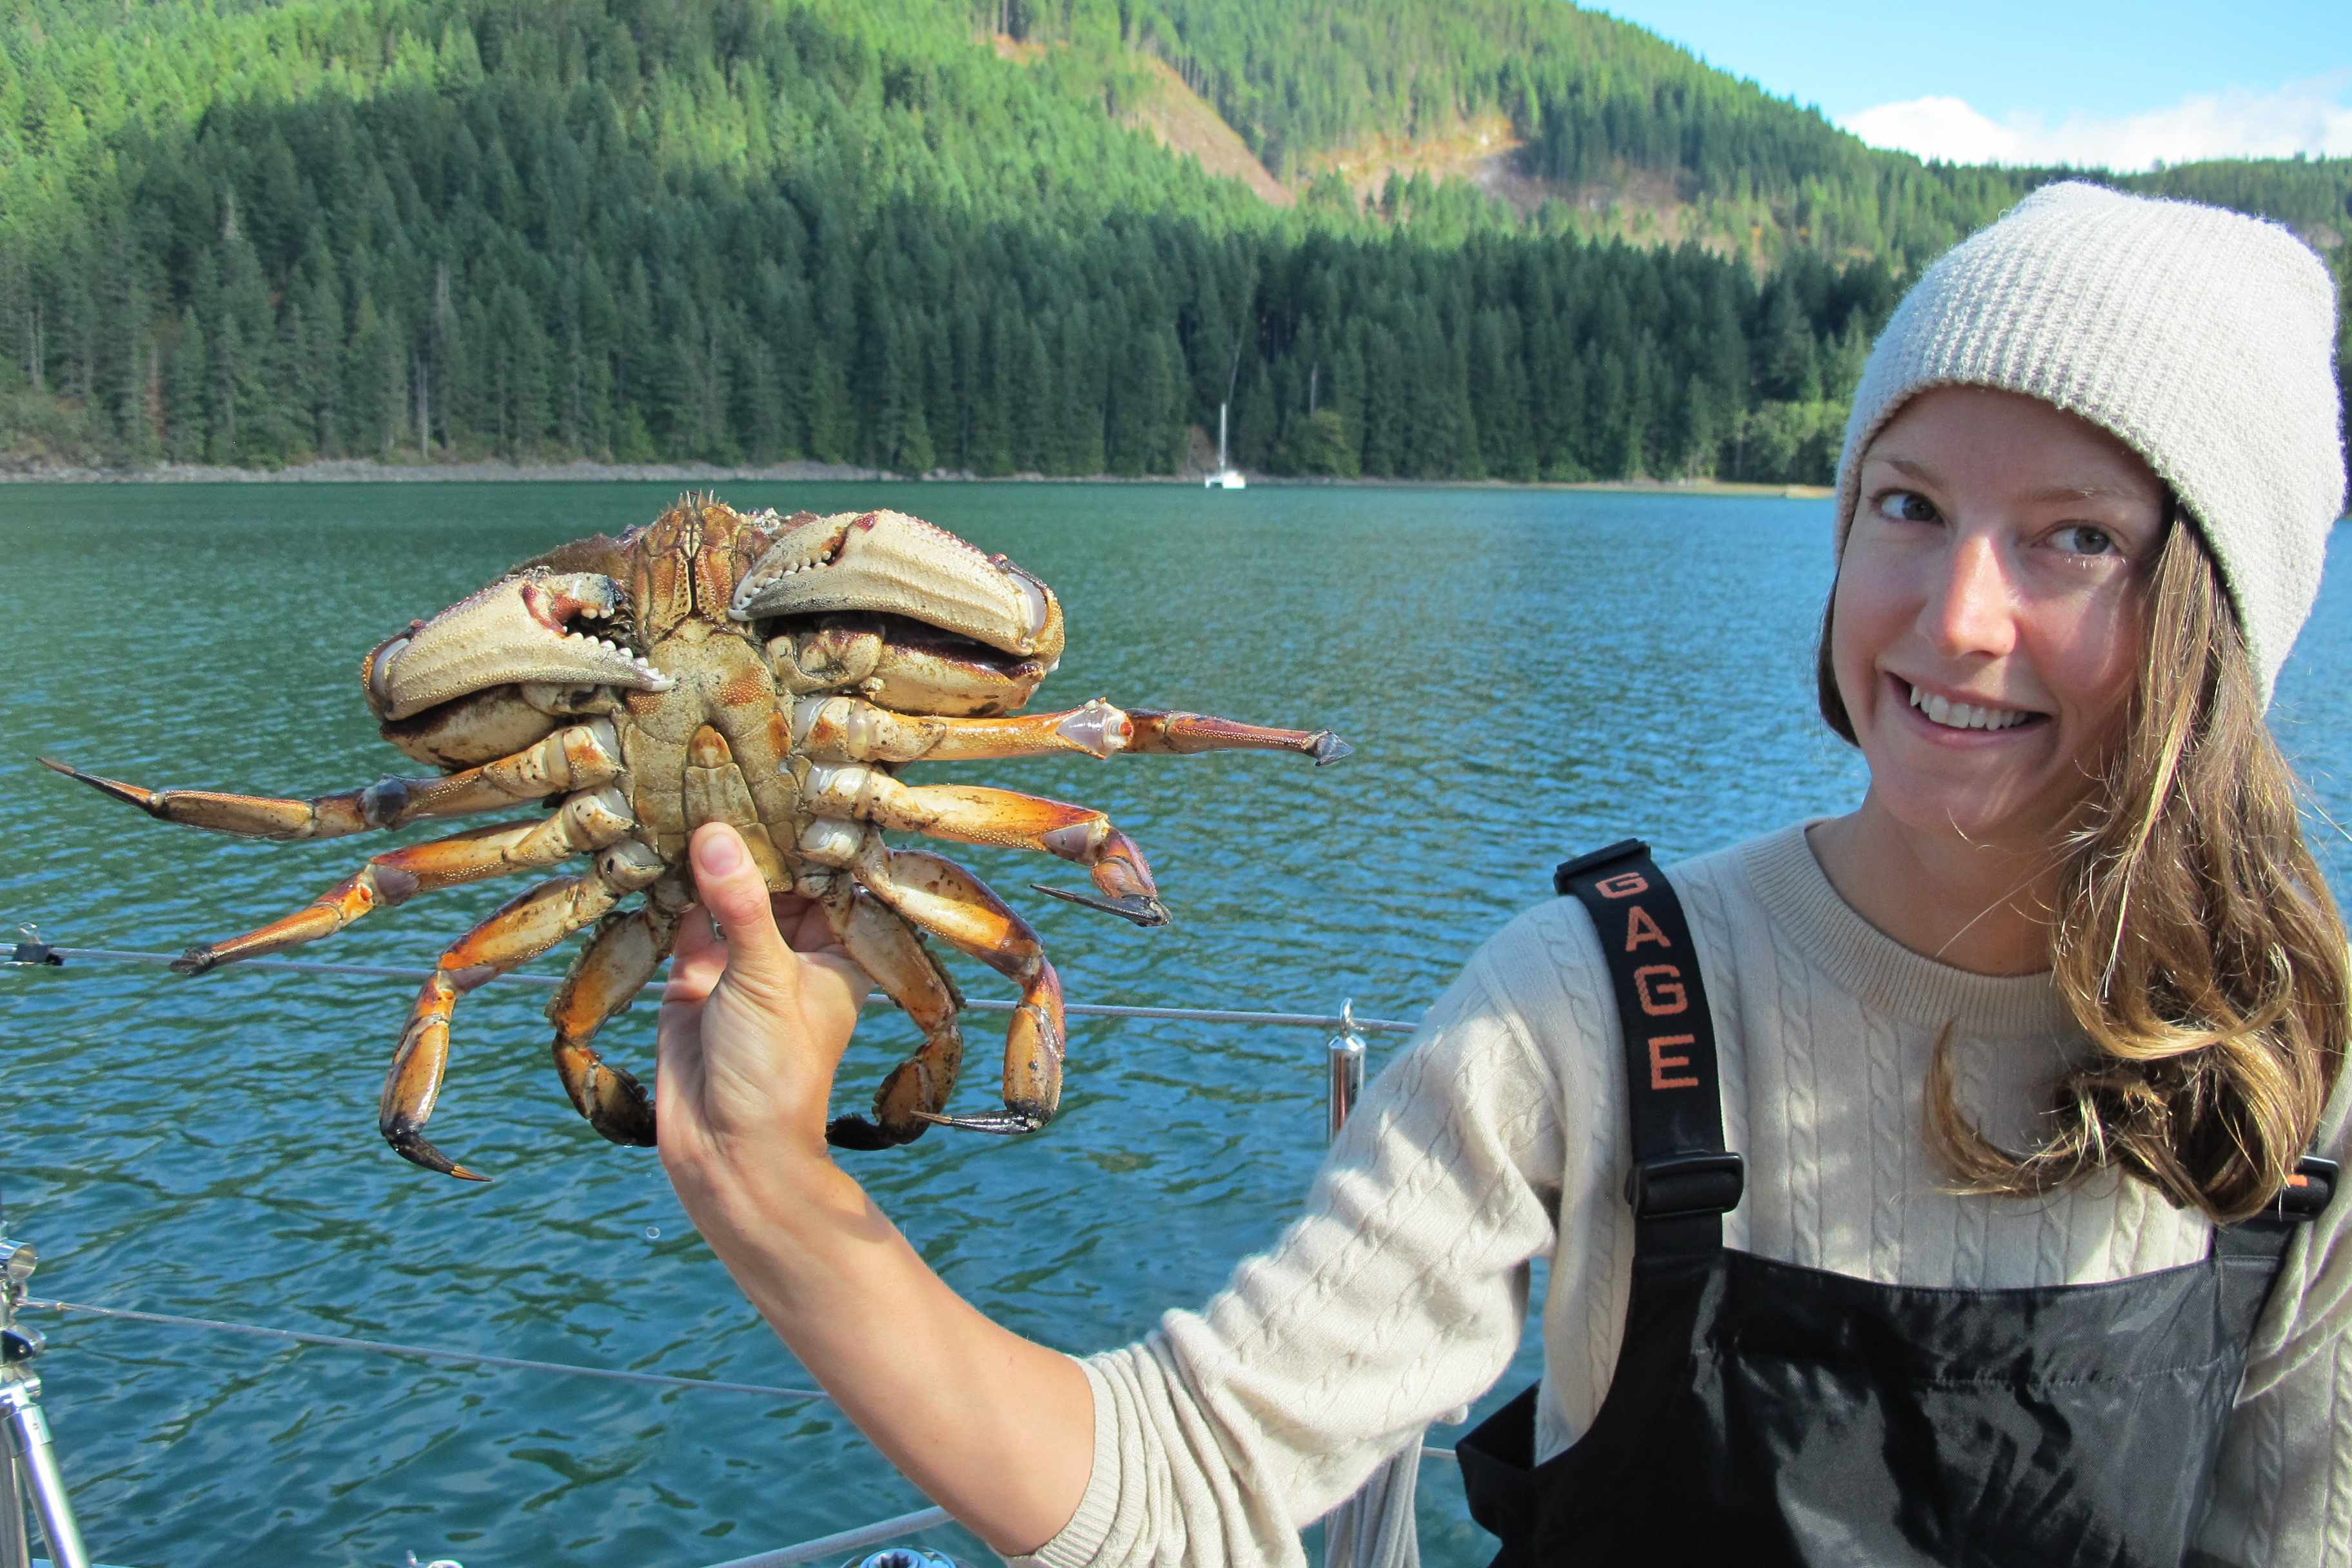 Biggest Dungeness Crab we ever caught, over 3 lbs!